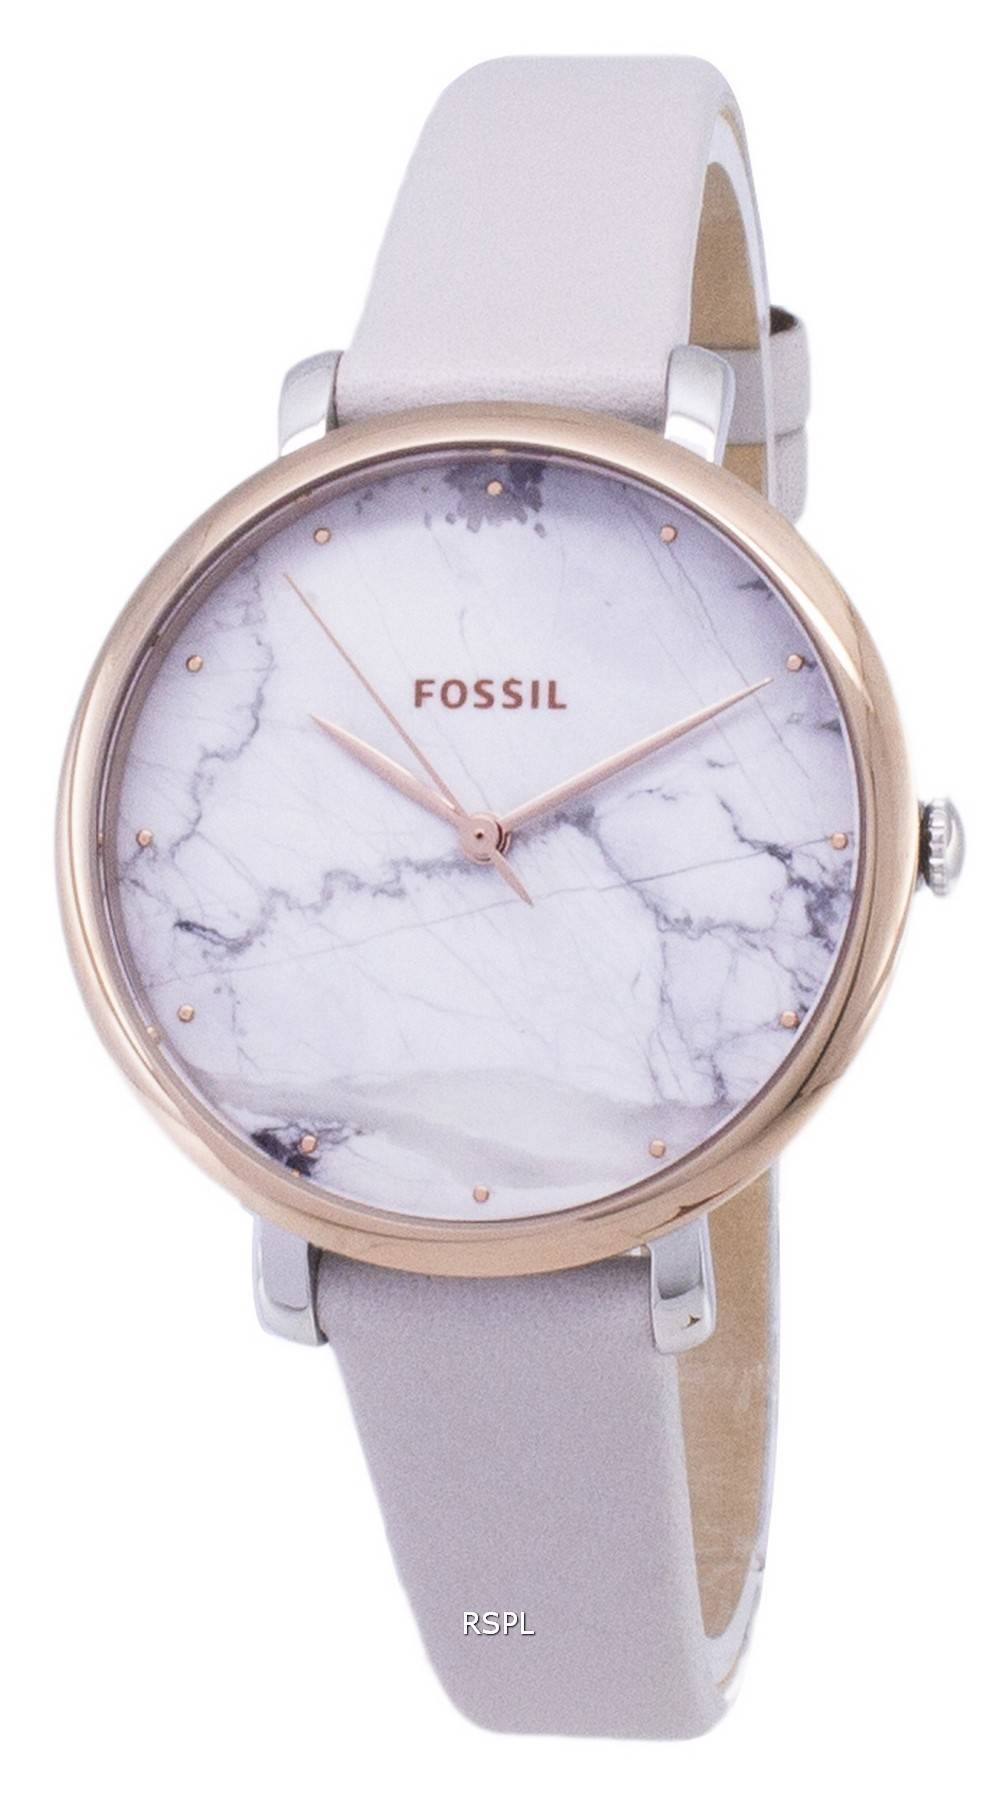 Jacqueline Es4377 Women's Fossil Quartz Watch Analog f7bgv6yY